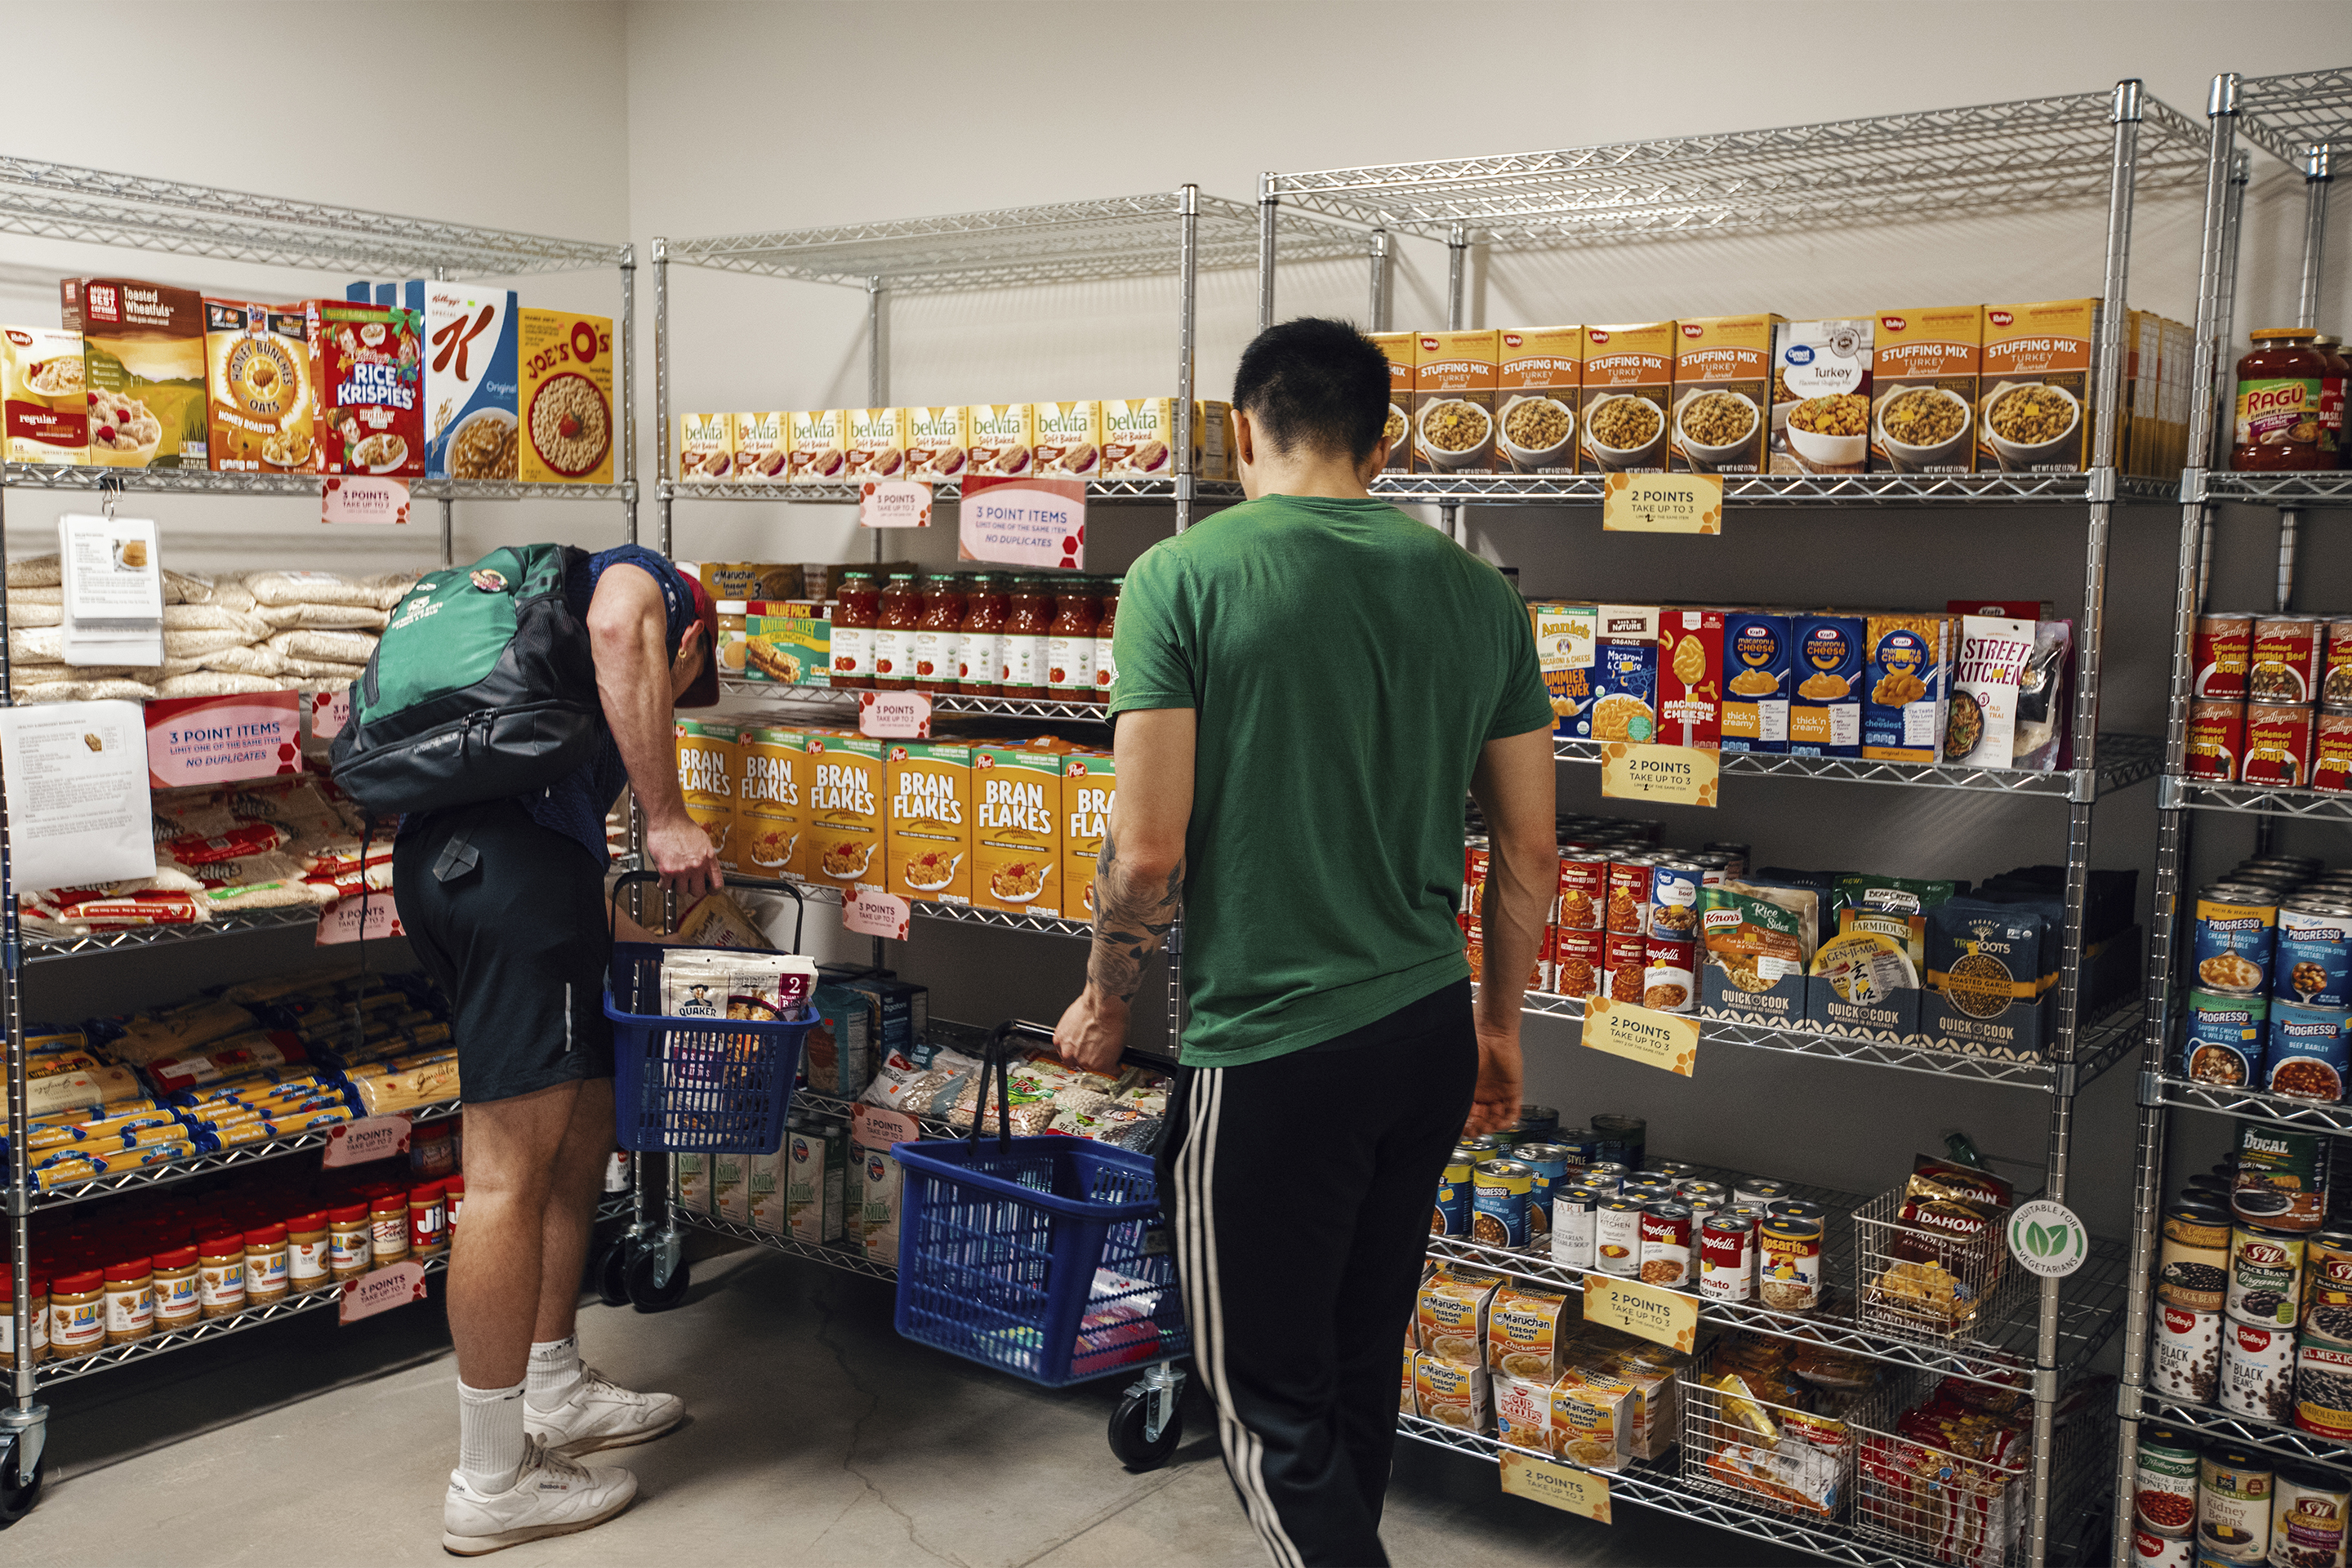 College Students Are Facing Increased Homelessness and Food Insecurity Since the Coronavirus Closed Campuses